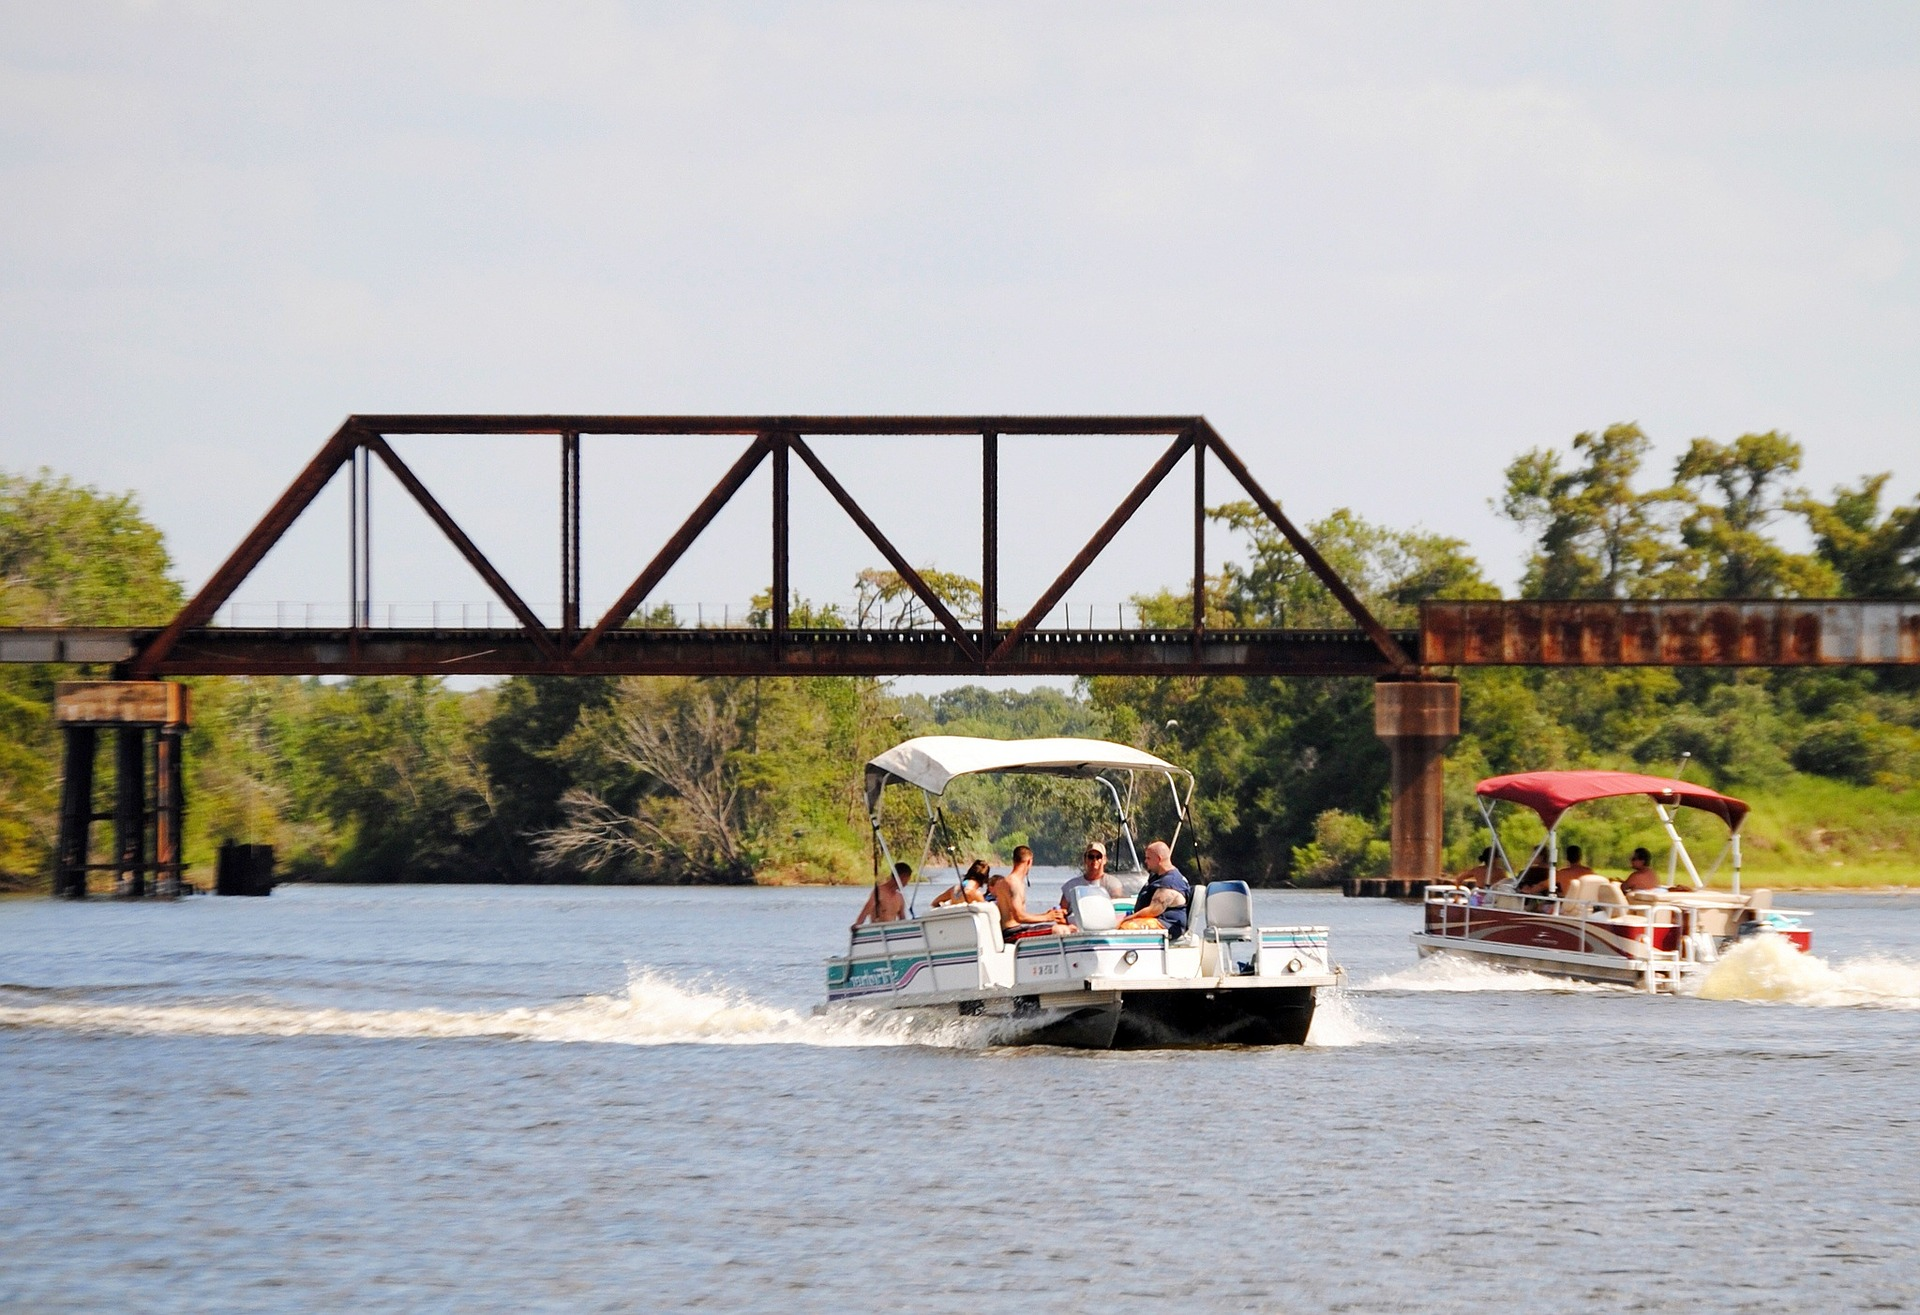 Two Pontoon Boats Rentals Cruising Under a Bridge